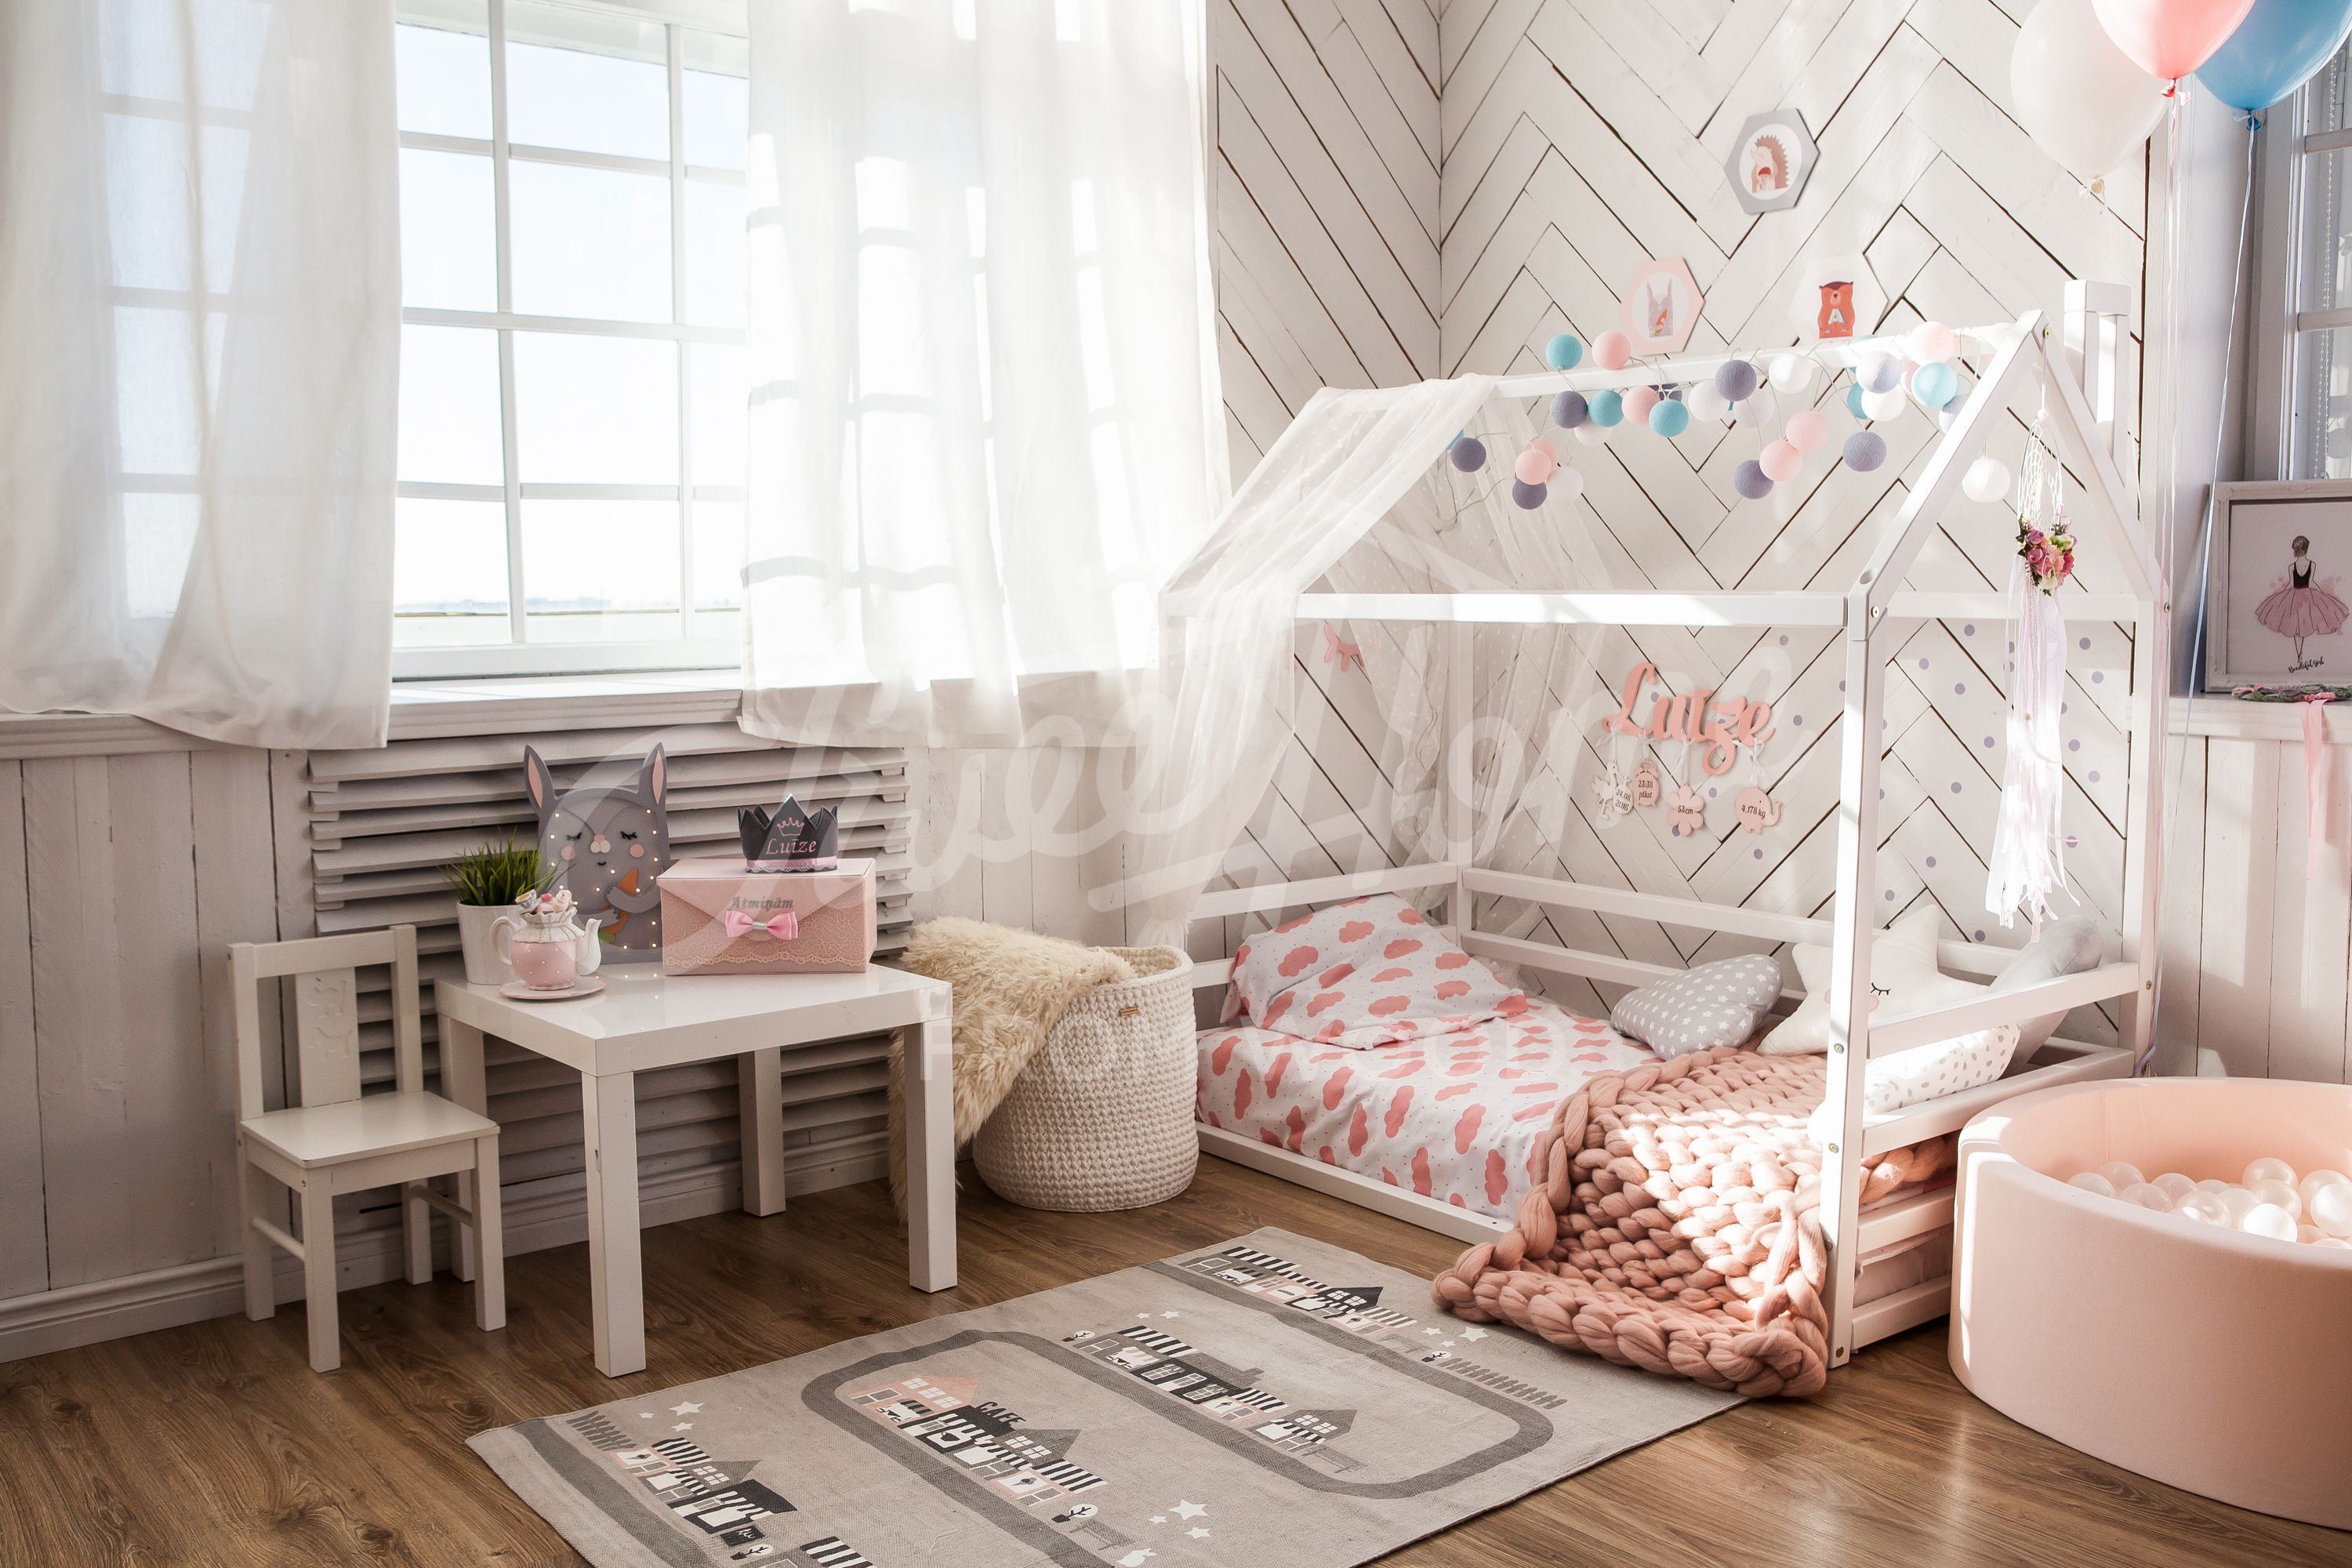 Toddler Bed Or House Bed With Slats Children Bed Frame Bed Kid